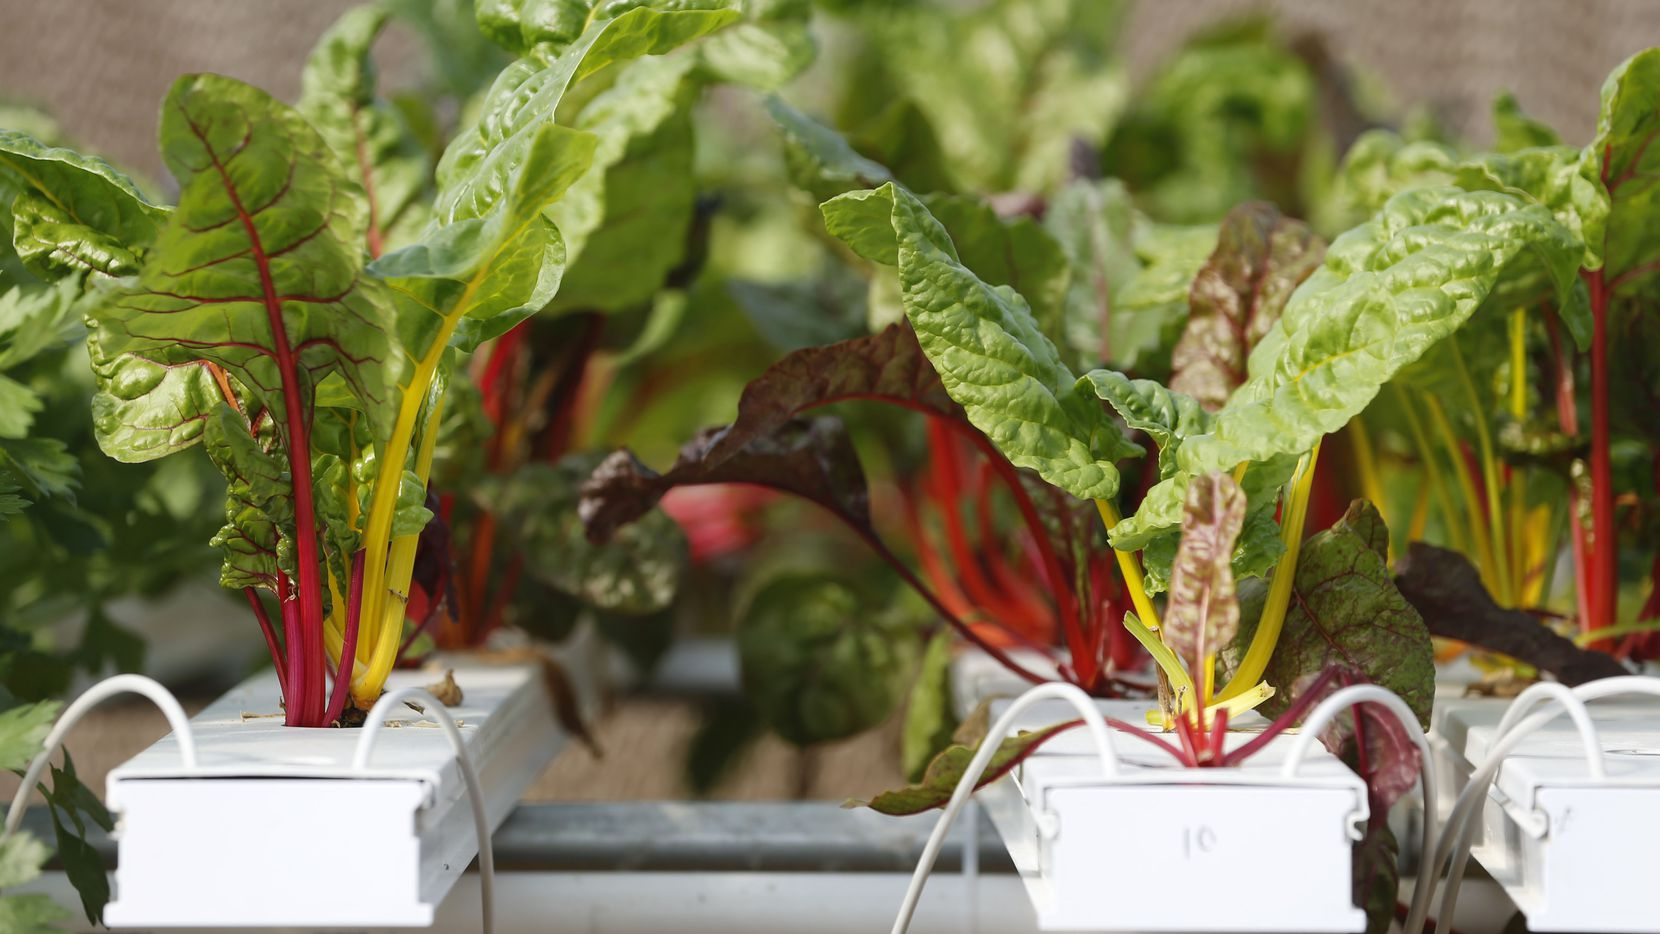 Swiss Chard is grown in a hydroponics system greenhouse at Profound Microfarms in Lucas, Texas, on Friday, Oct. 27, 2017.